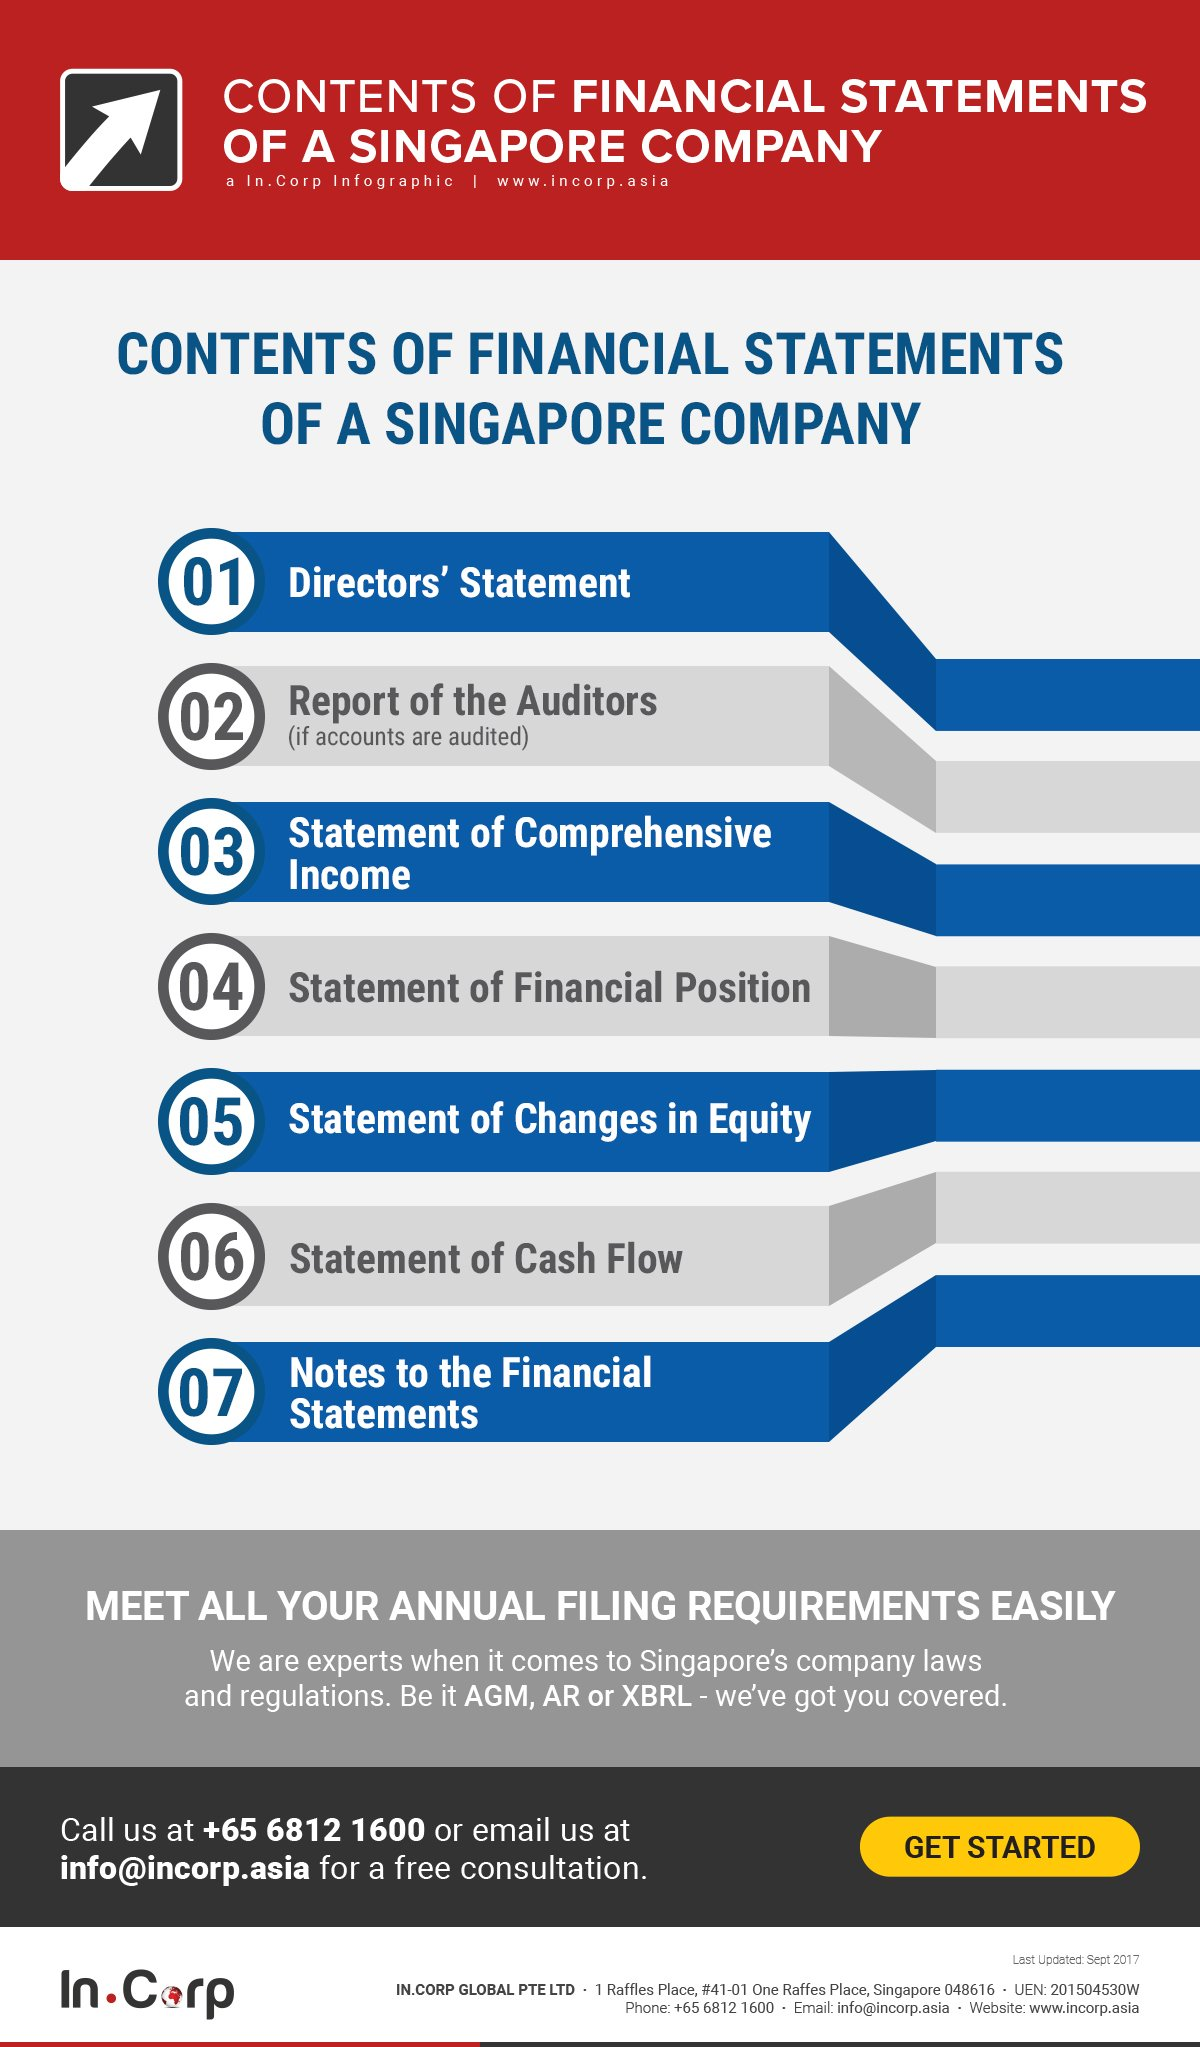 singapore company financial statements what they need to cover